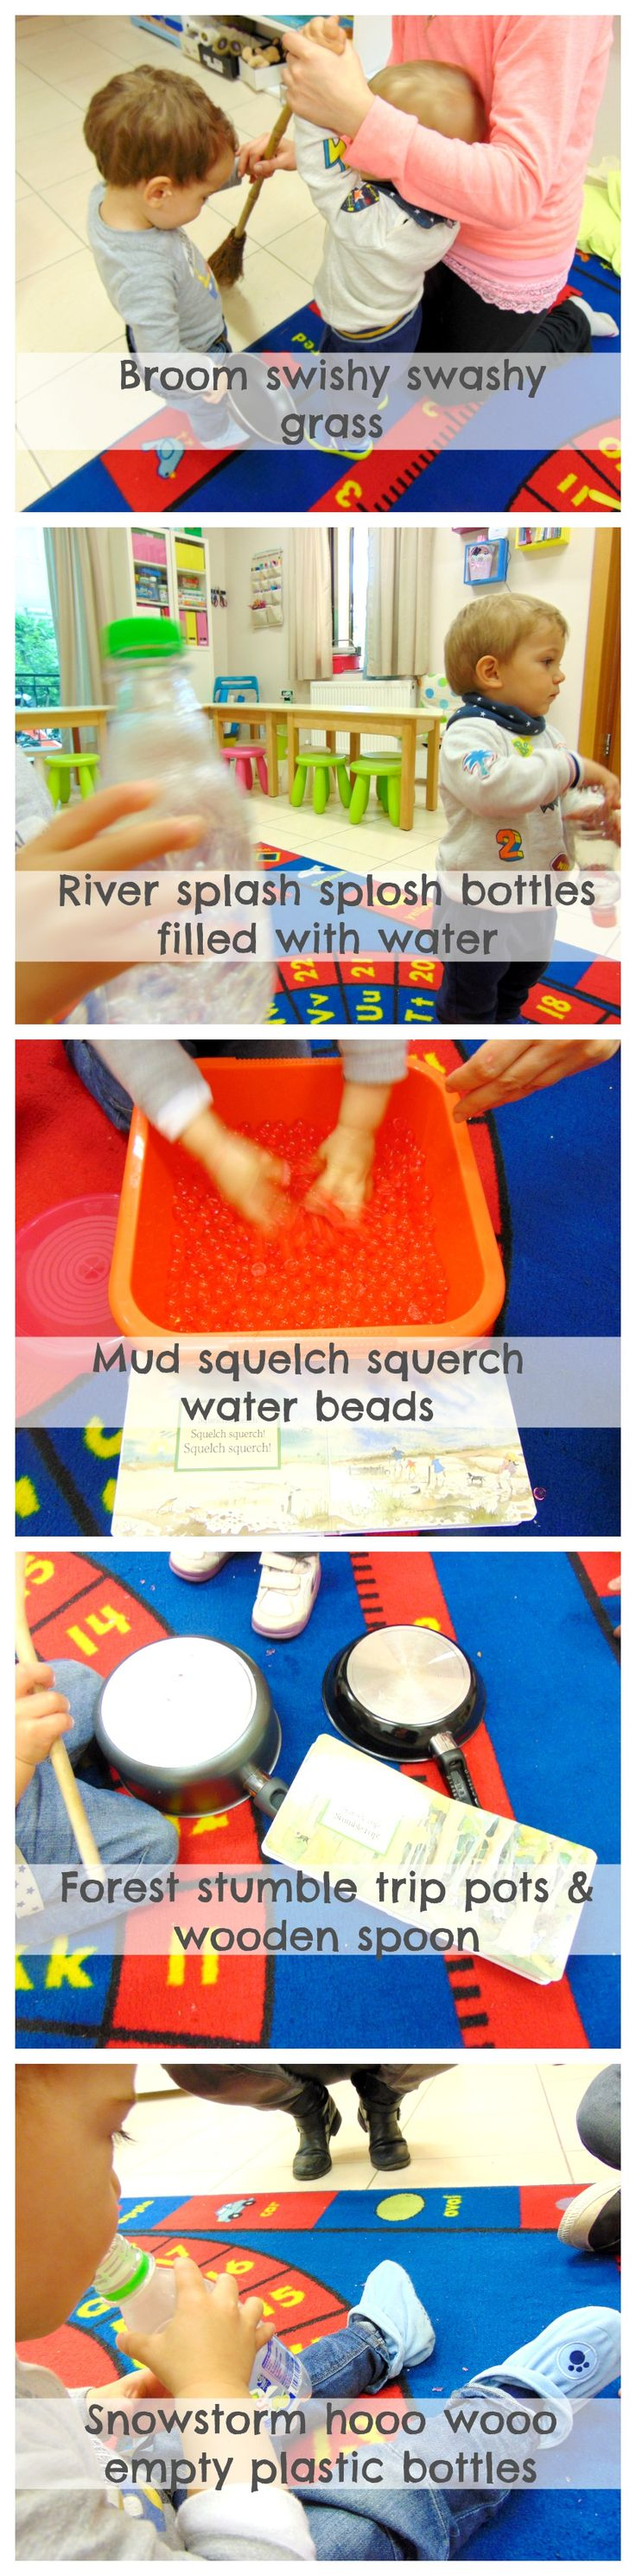 Sound activity for babies & toddlers for the book We're going on a bear hunt